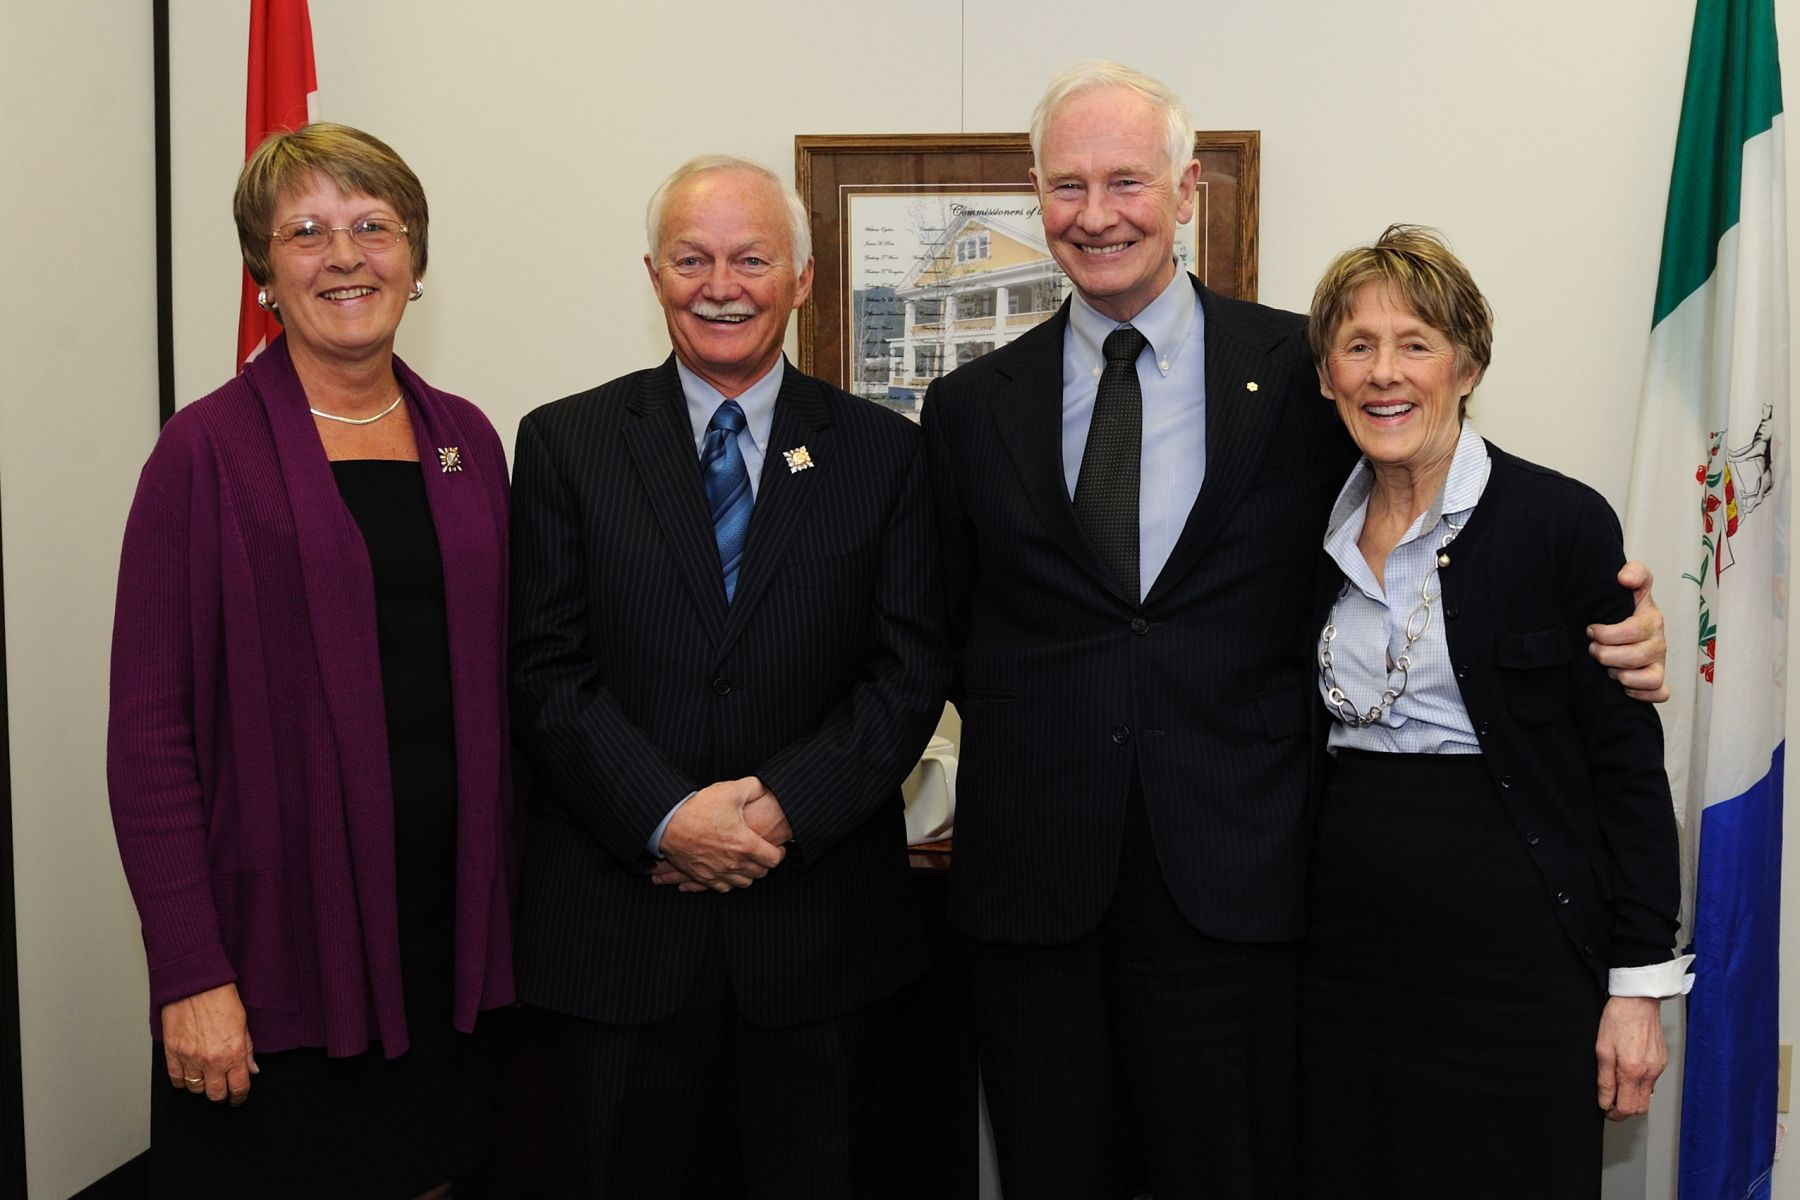 Official photo of Their Excellencies the Right Honourable David Johnston and Mrs. Sharon Johnston (right) along with the Honourable Douglas George Phillips, Commissioner of Yukon,  and his wife Ms. Dale Stokes (left).